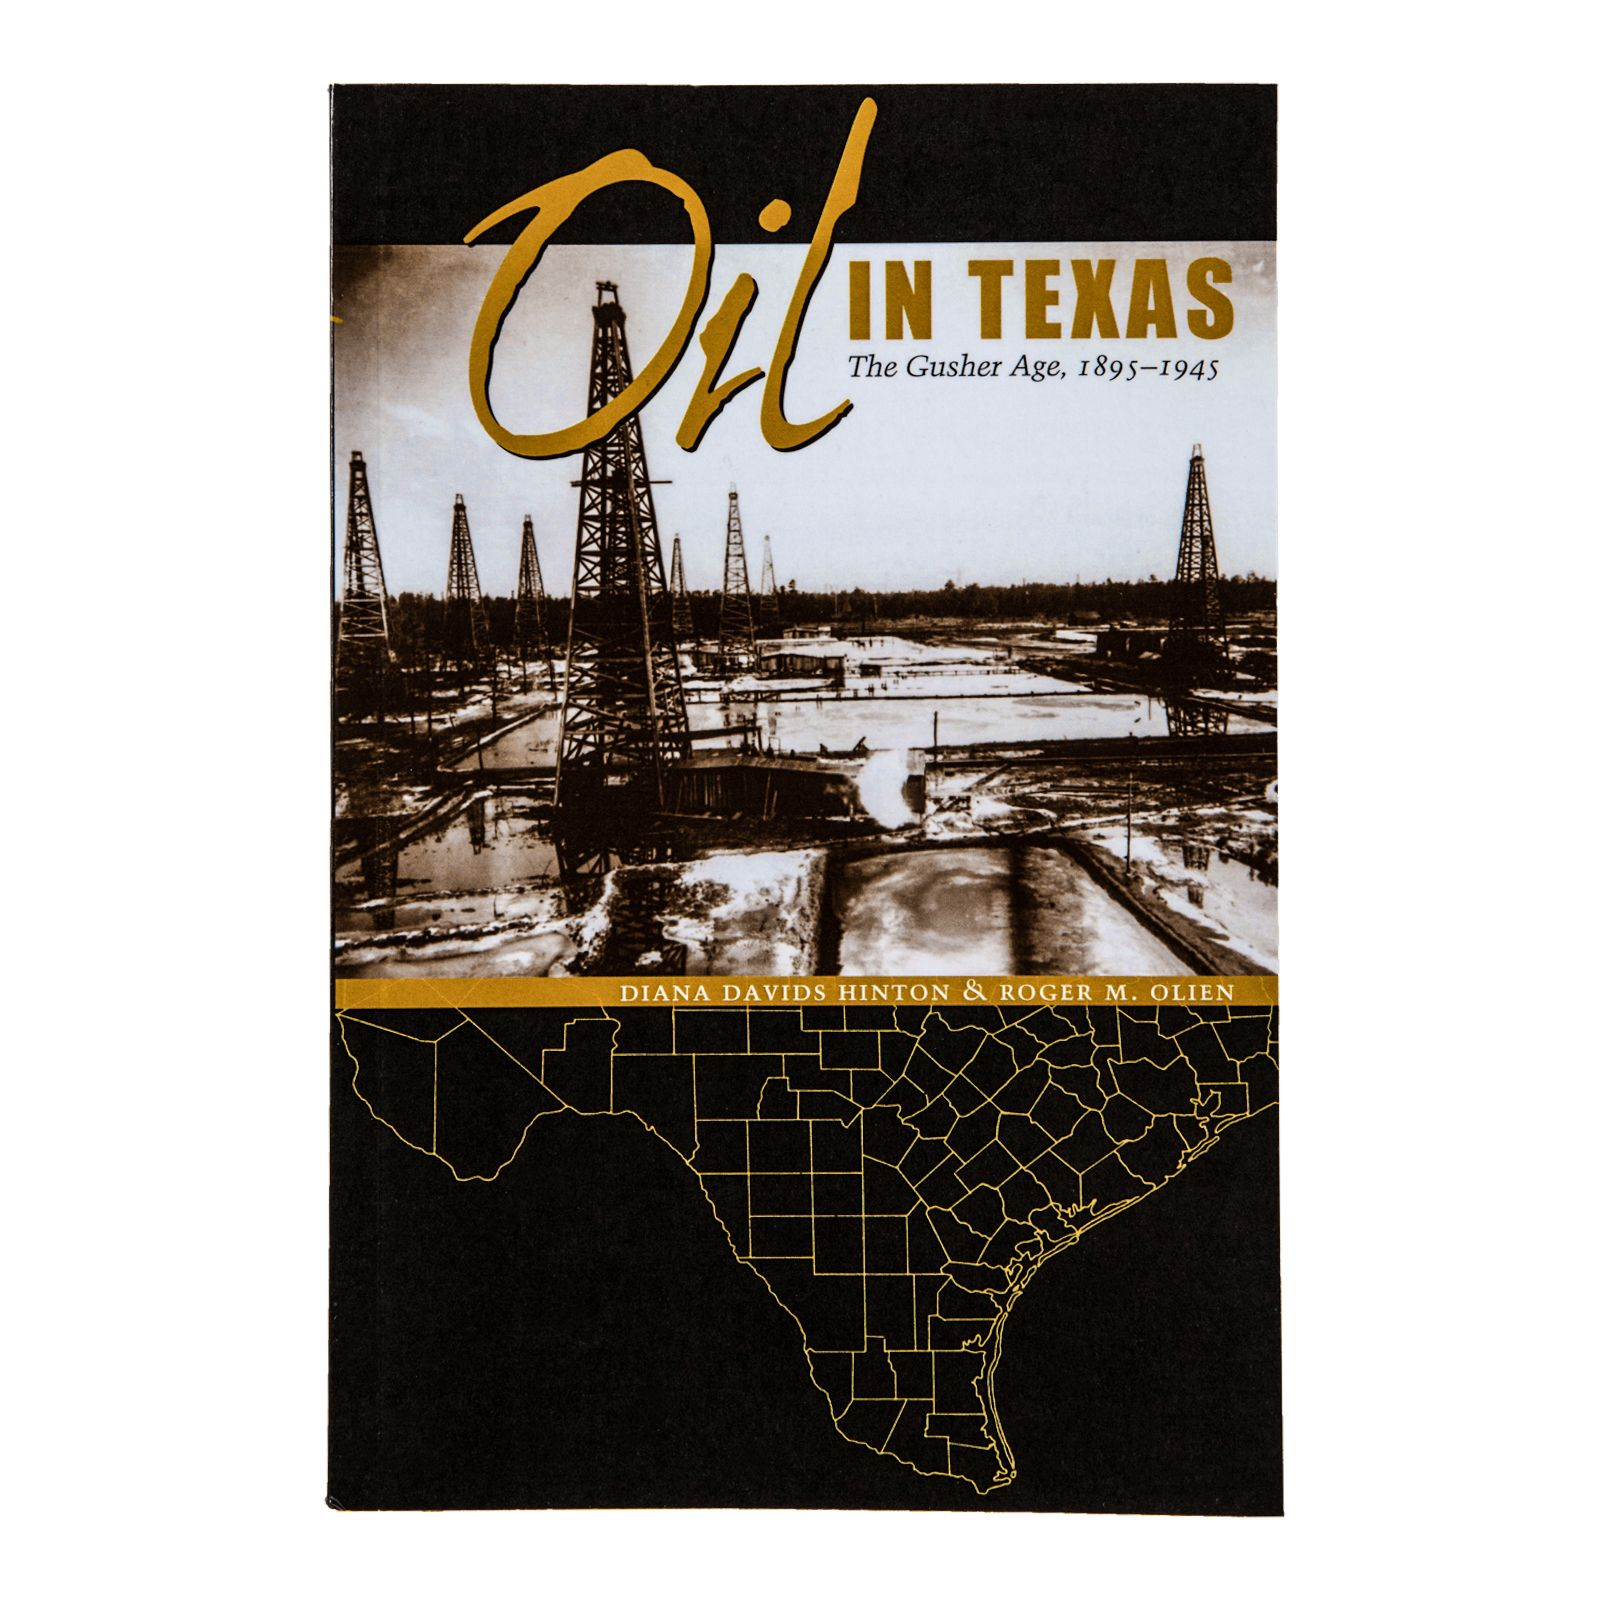 Oil in Texas: The Gusher Age, 1895-1945